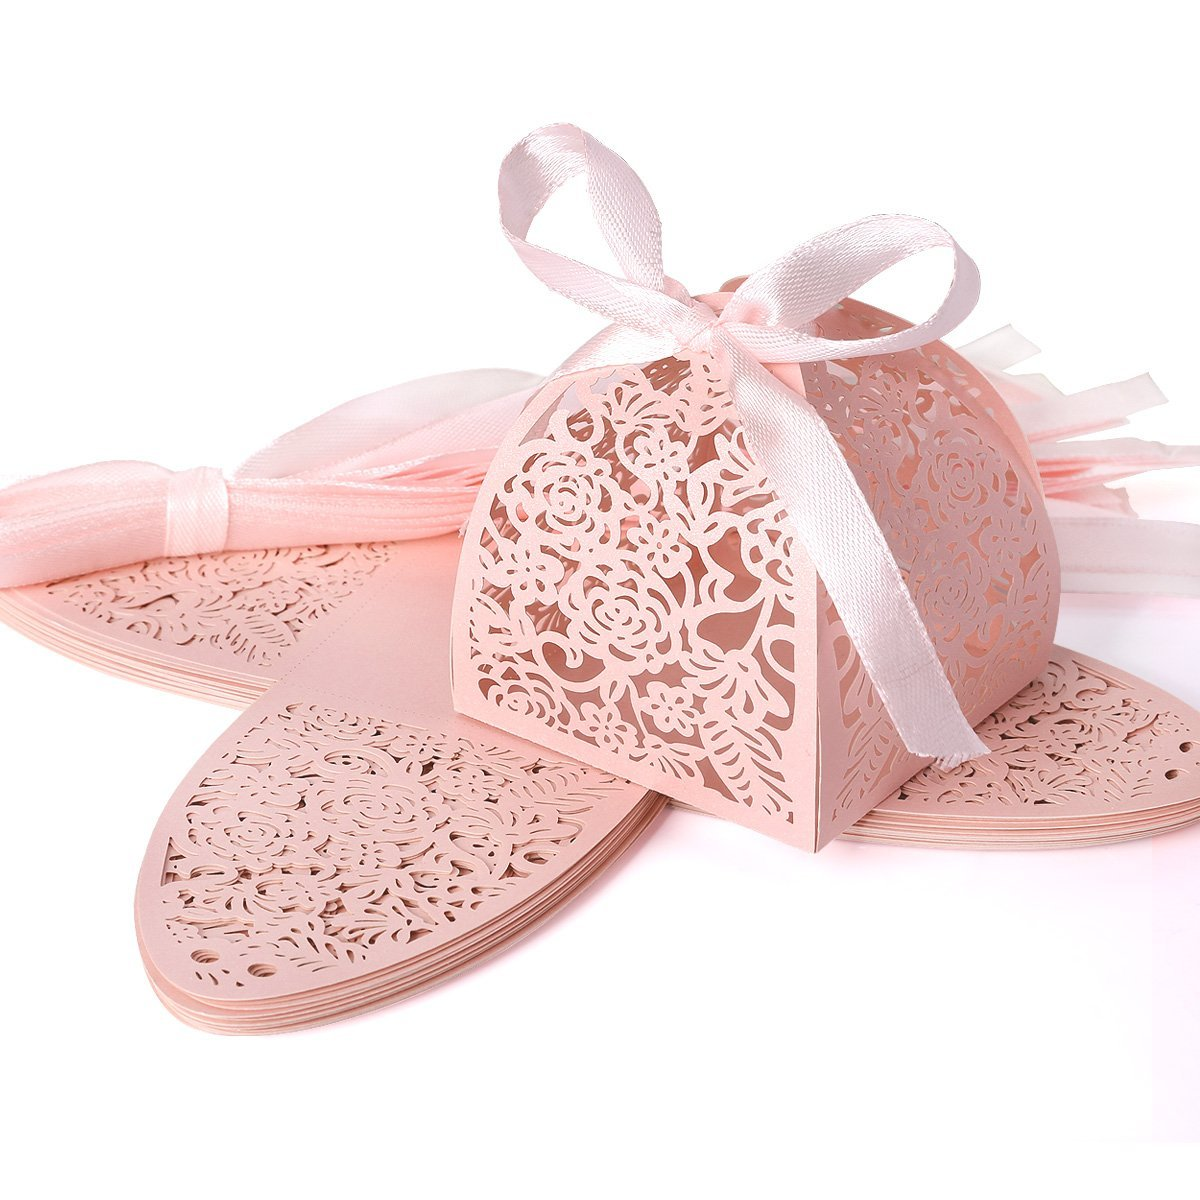 Buy Laser cut oblong rose wedding candy favor box, paper gifts bag ...